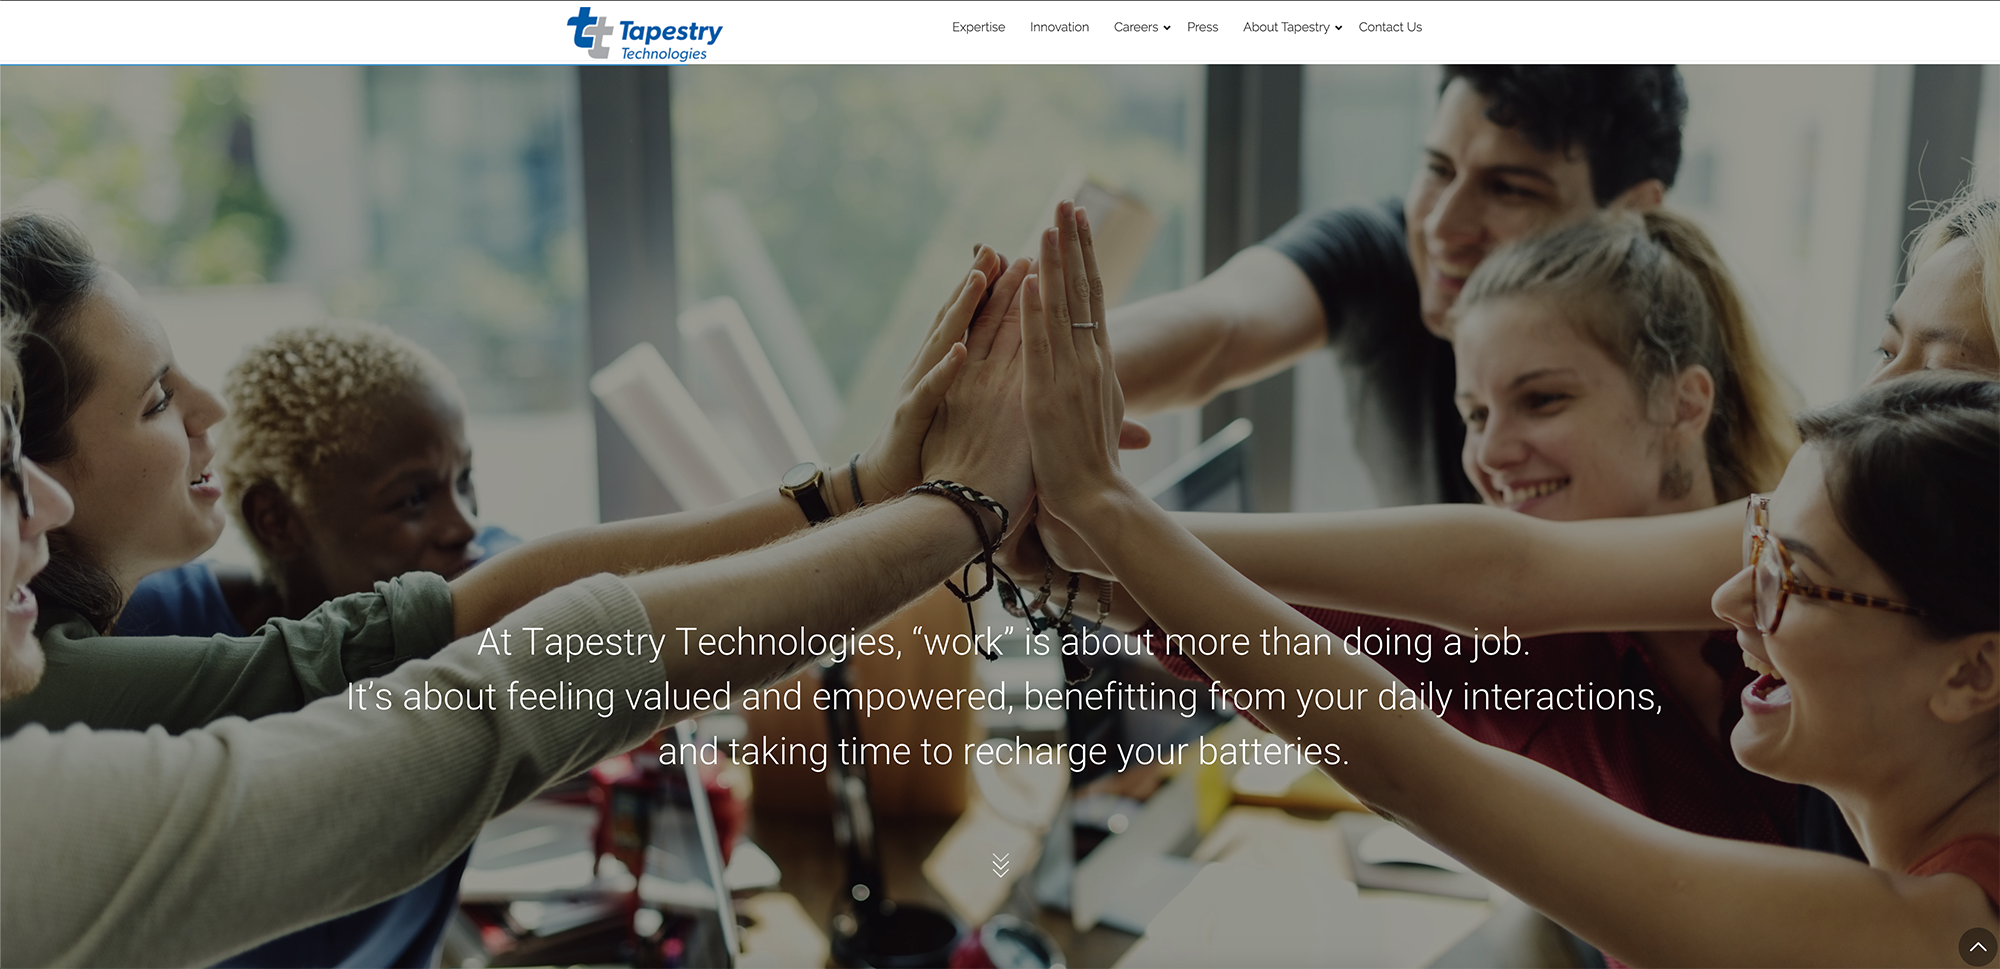 Tapestry Technologies, Inc. Website Launched